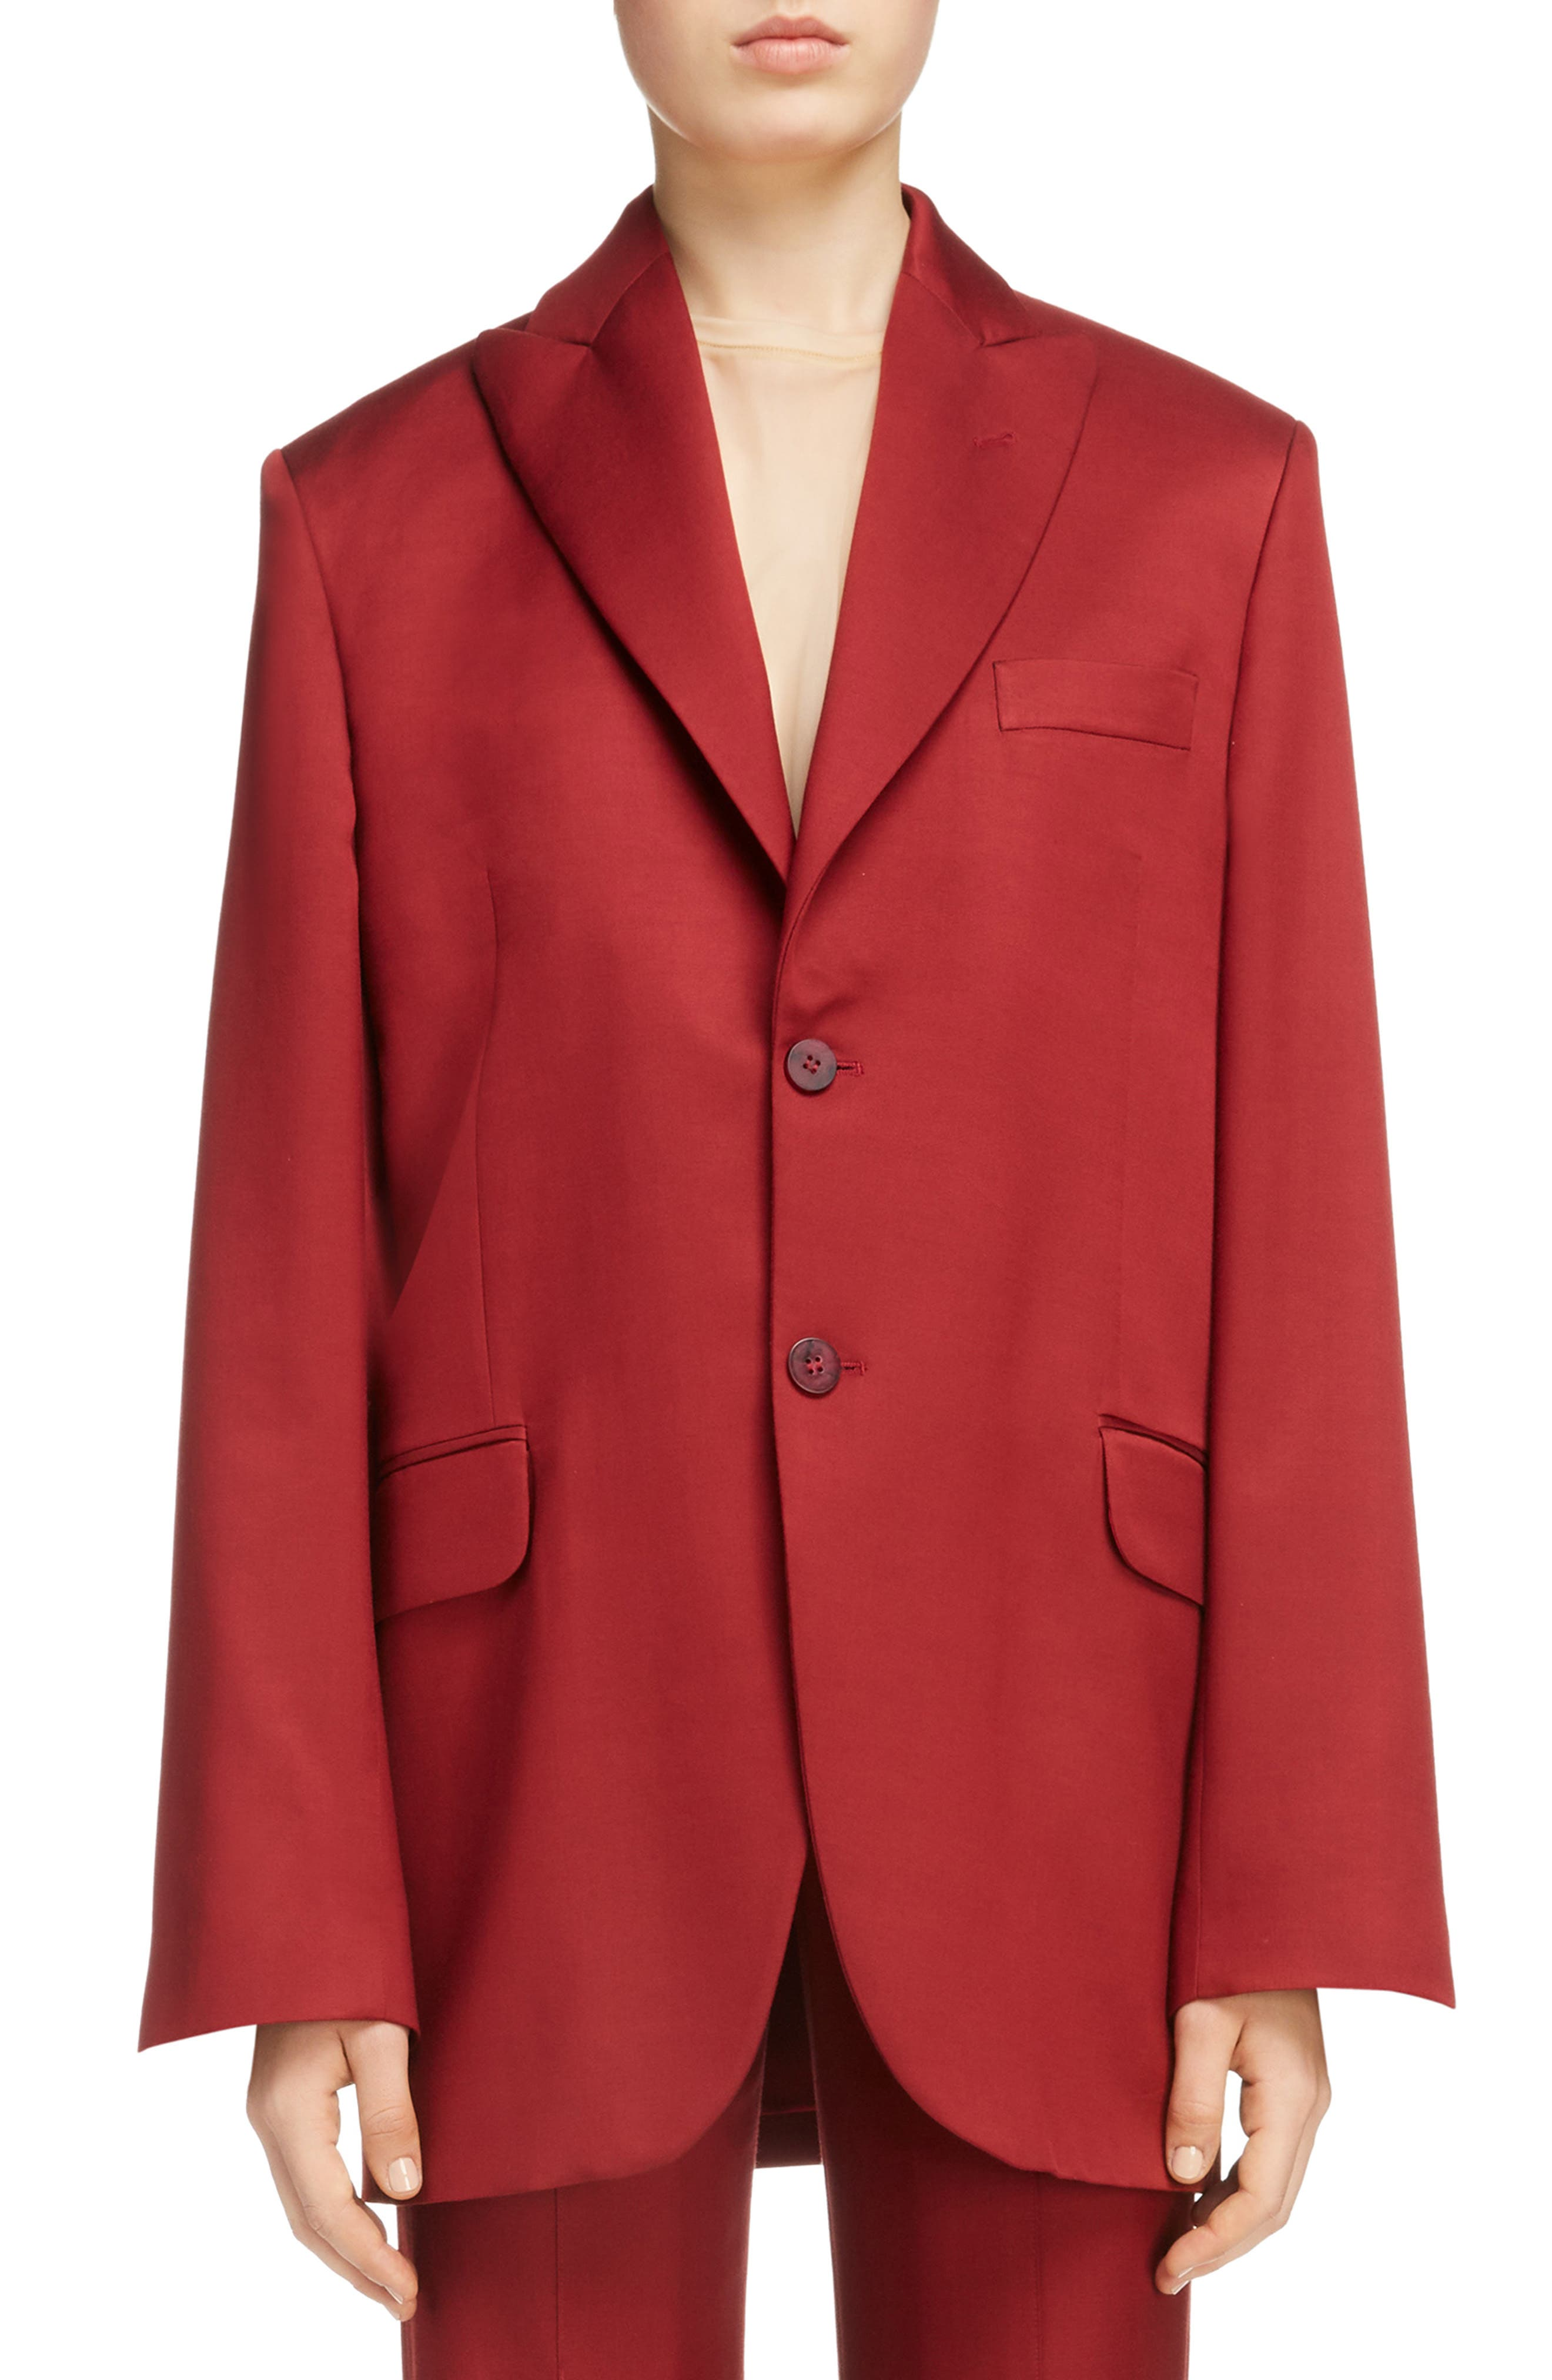 Acne Studios Jaria Suit Jacket